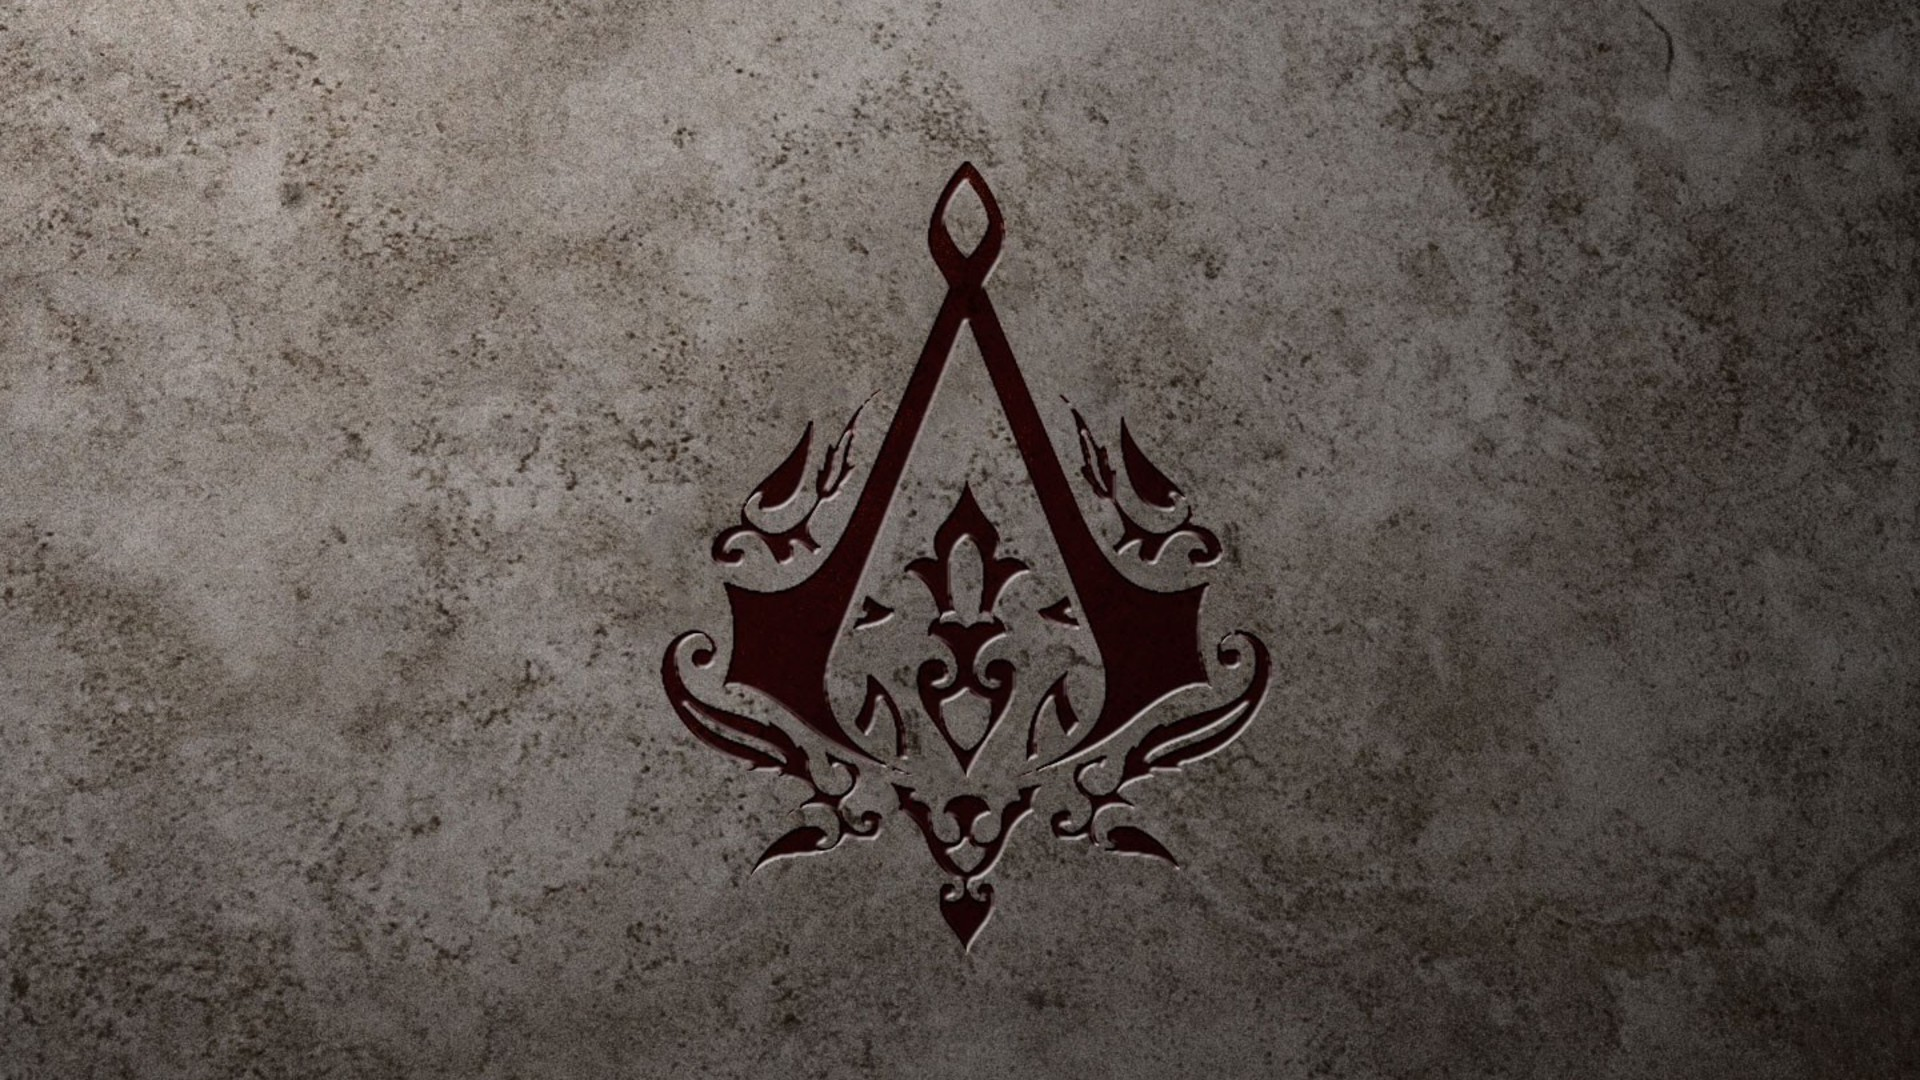 Best Quotes Hd Wallpapers For Mobile Logo Assassins Creed Wallpapers Pixelstalk Net